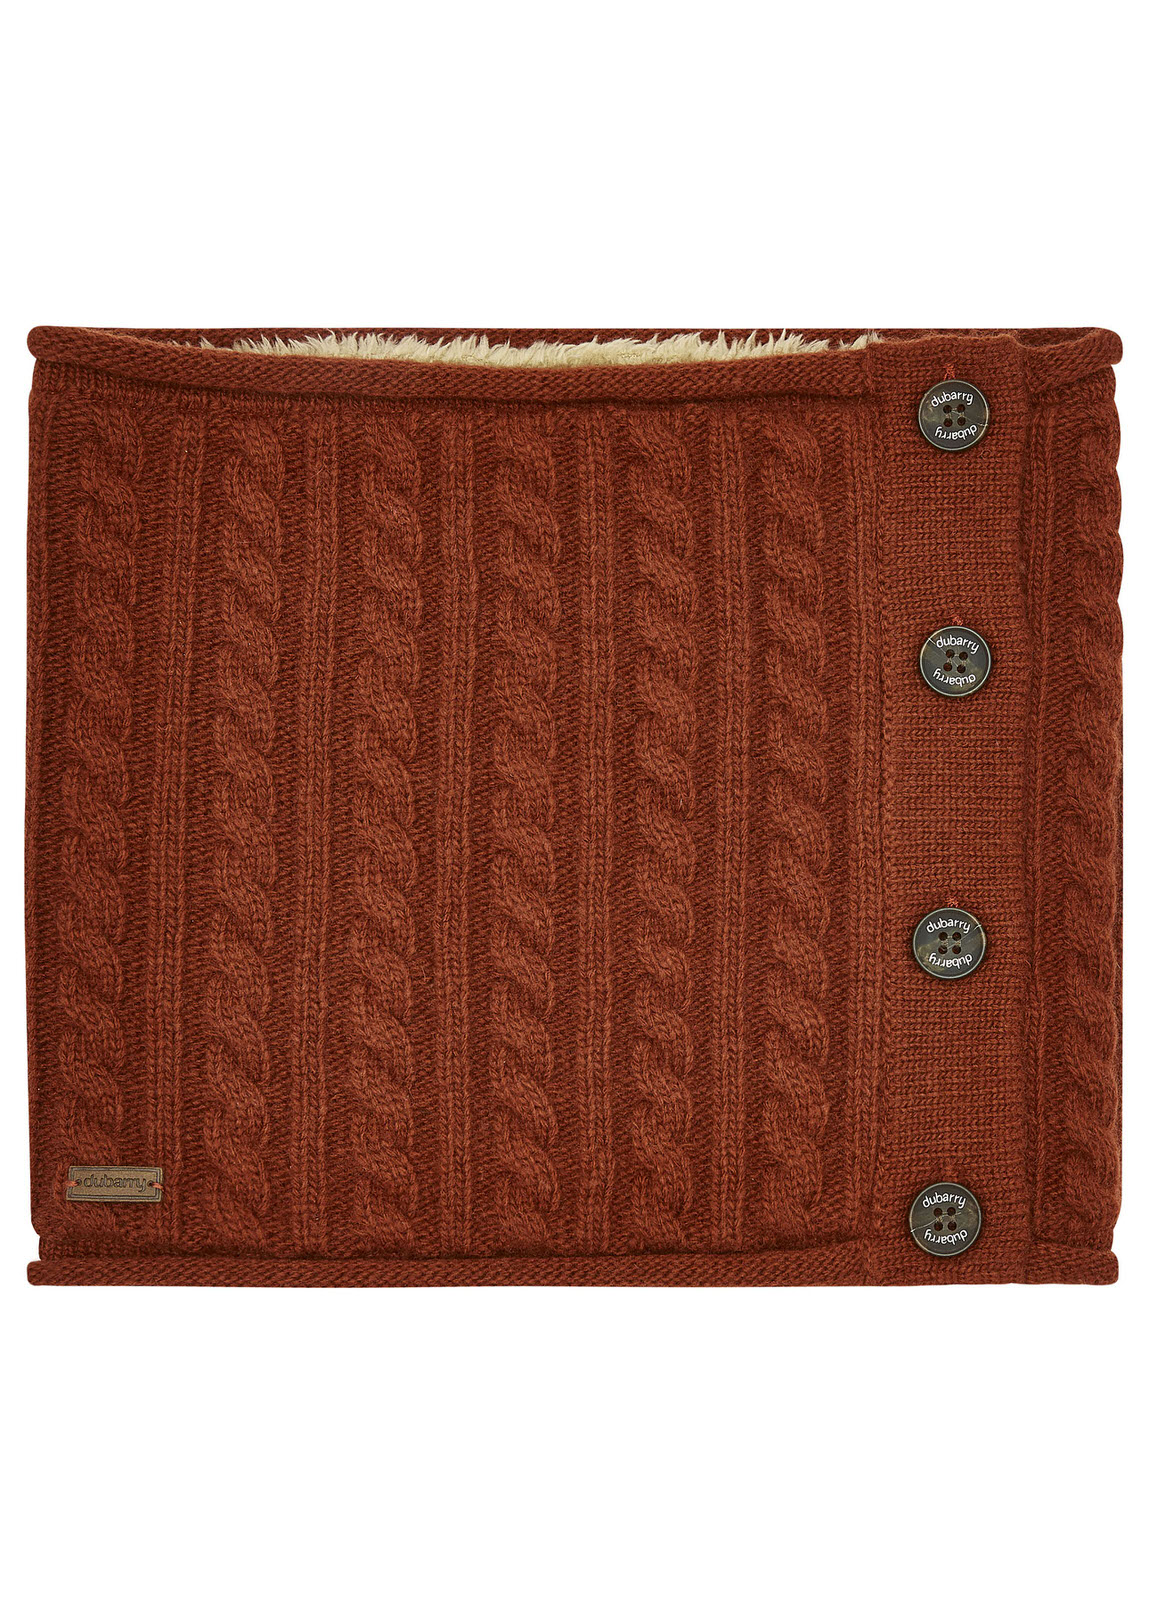 Crawford_Neck_Warmer_Russet_Image_1